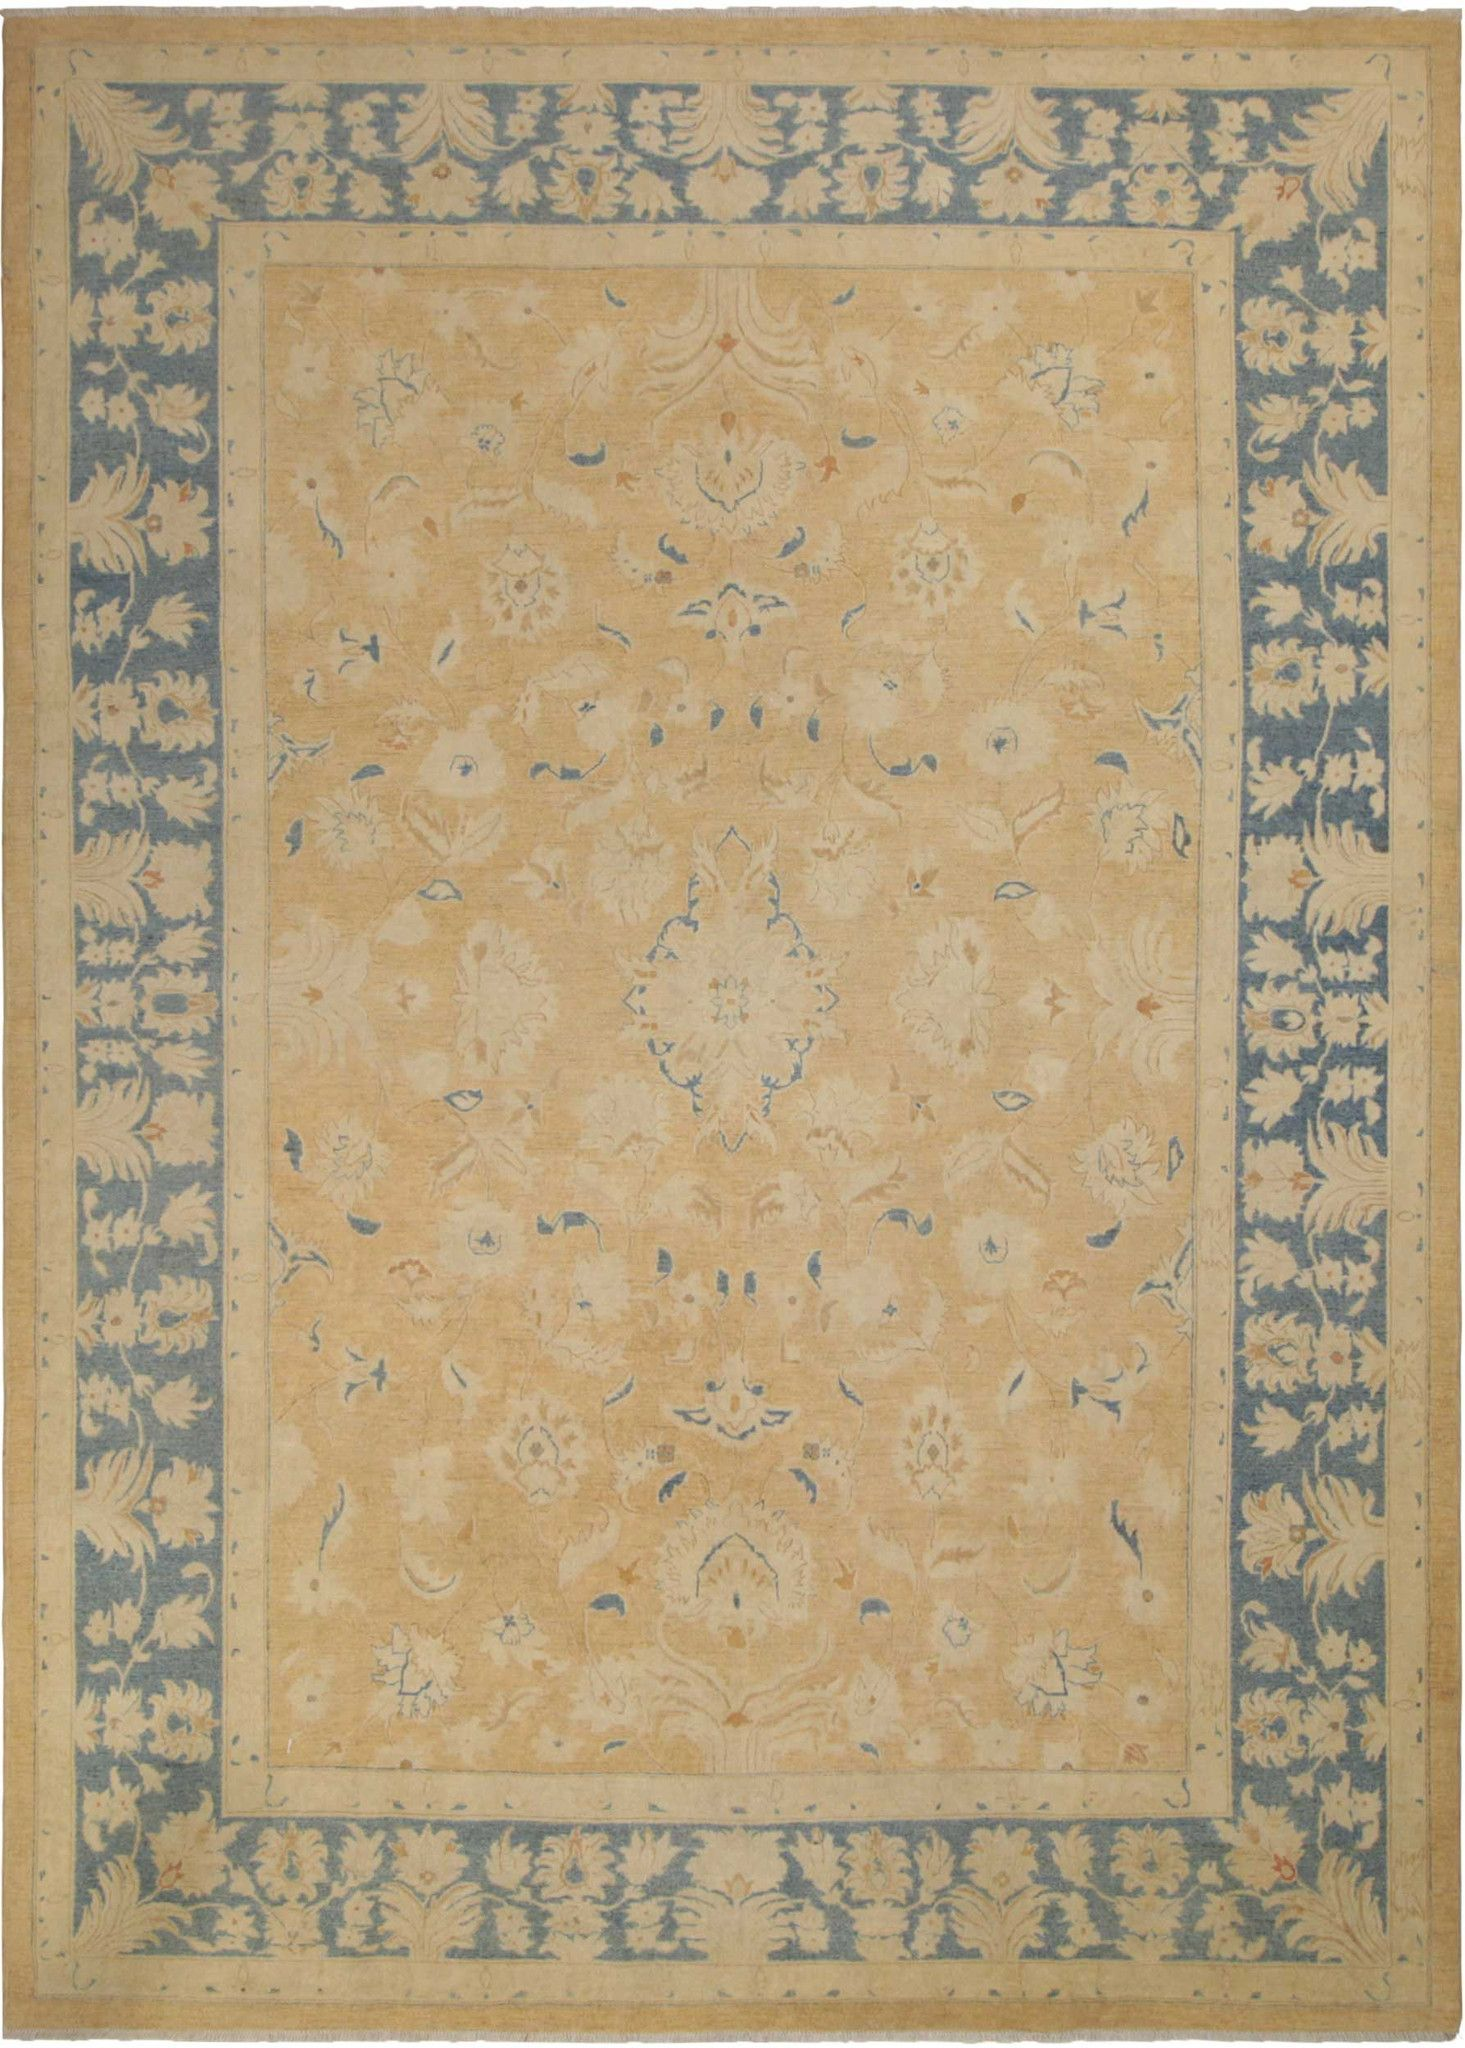 10x14 Tan Peshawar Ziegler Rug Dining Room Table Wool Area Rugs Family